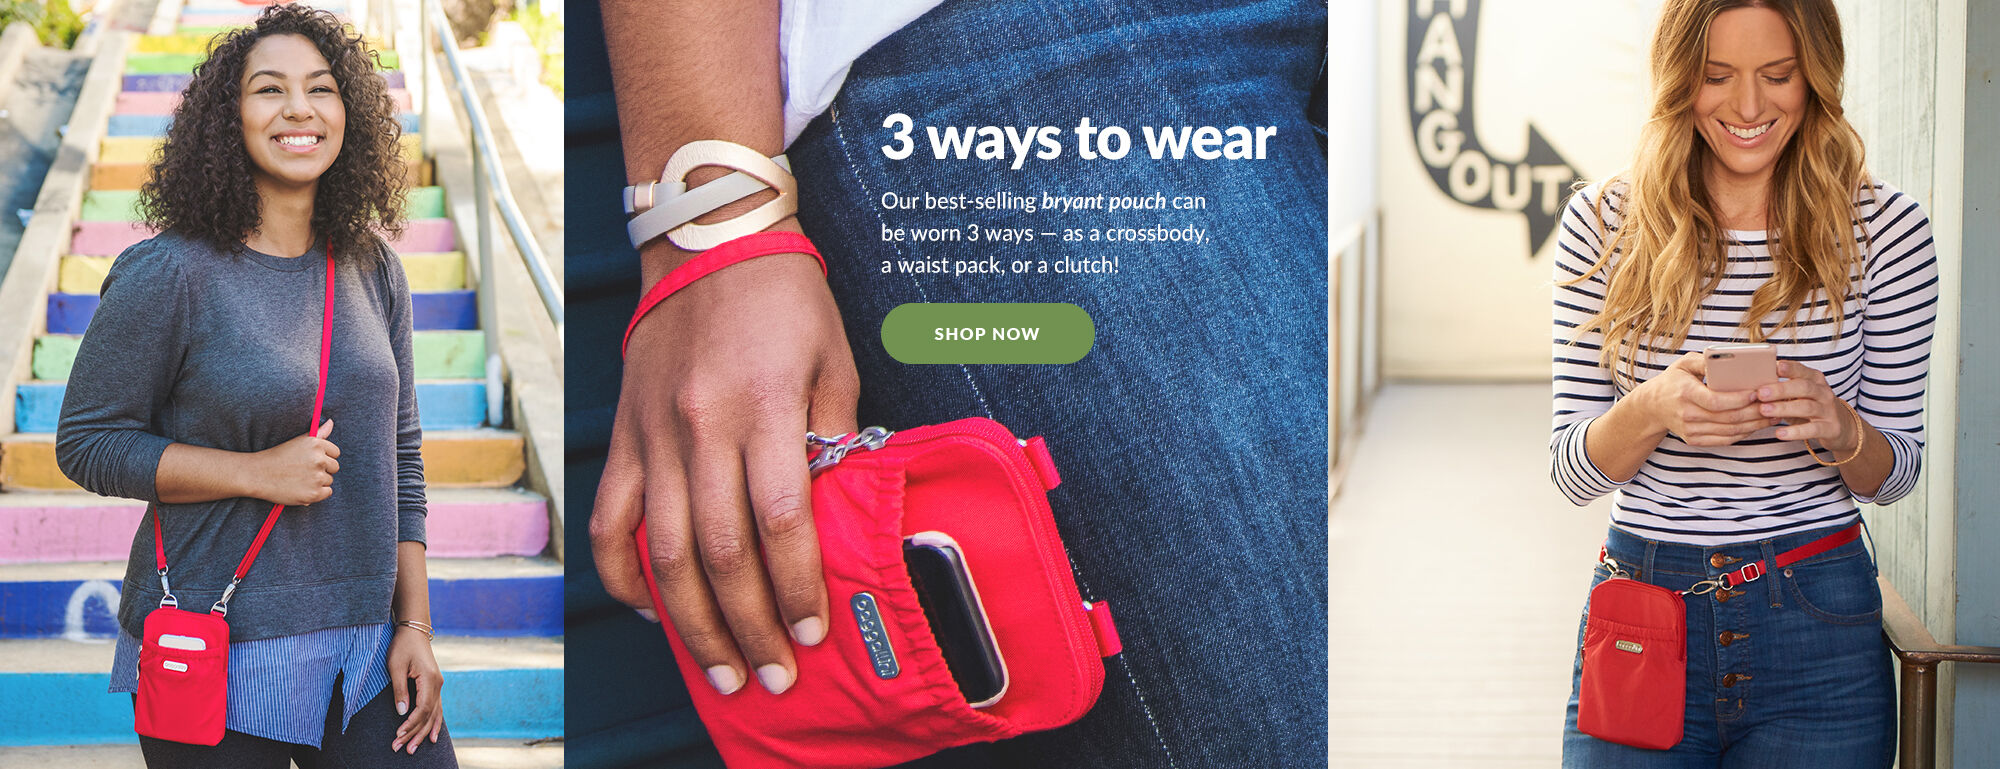 '3 ways to wear. Our best-selling bryant pouch can be worn 3 ways - as a crossbody